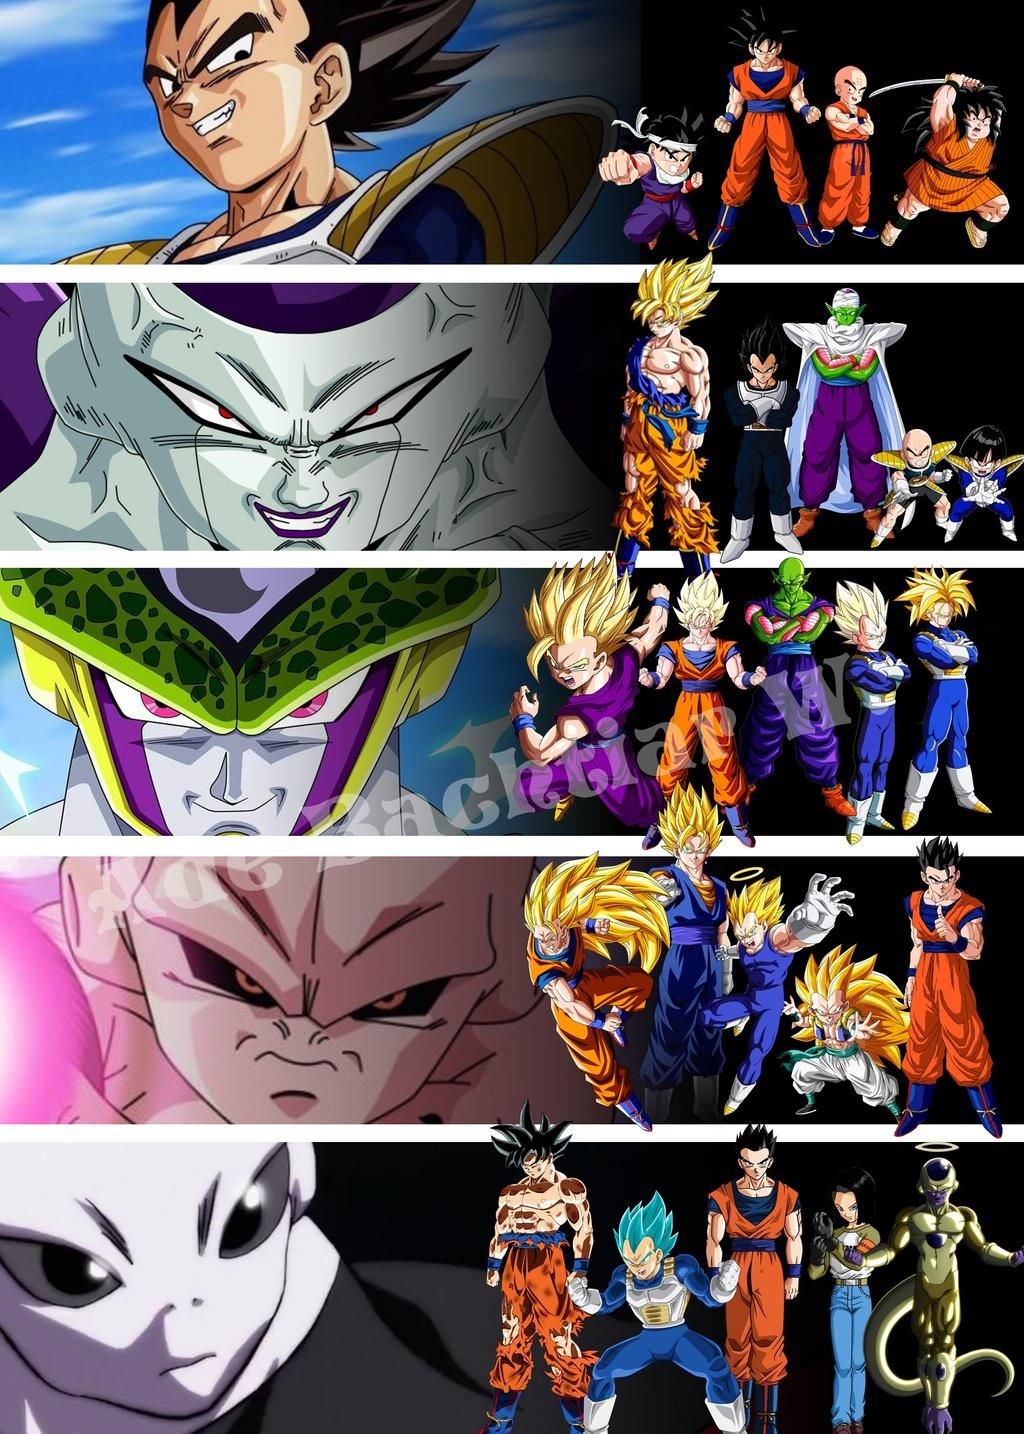 From Z Fighters to Super Fighters by adb3388 on DeviantArt